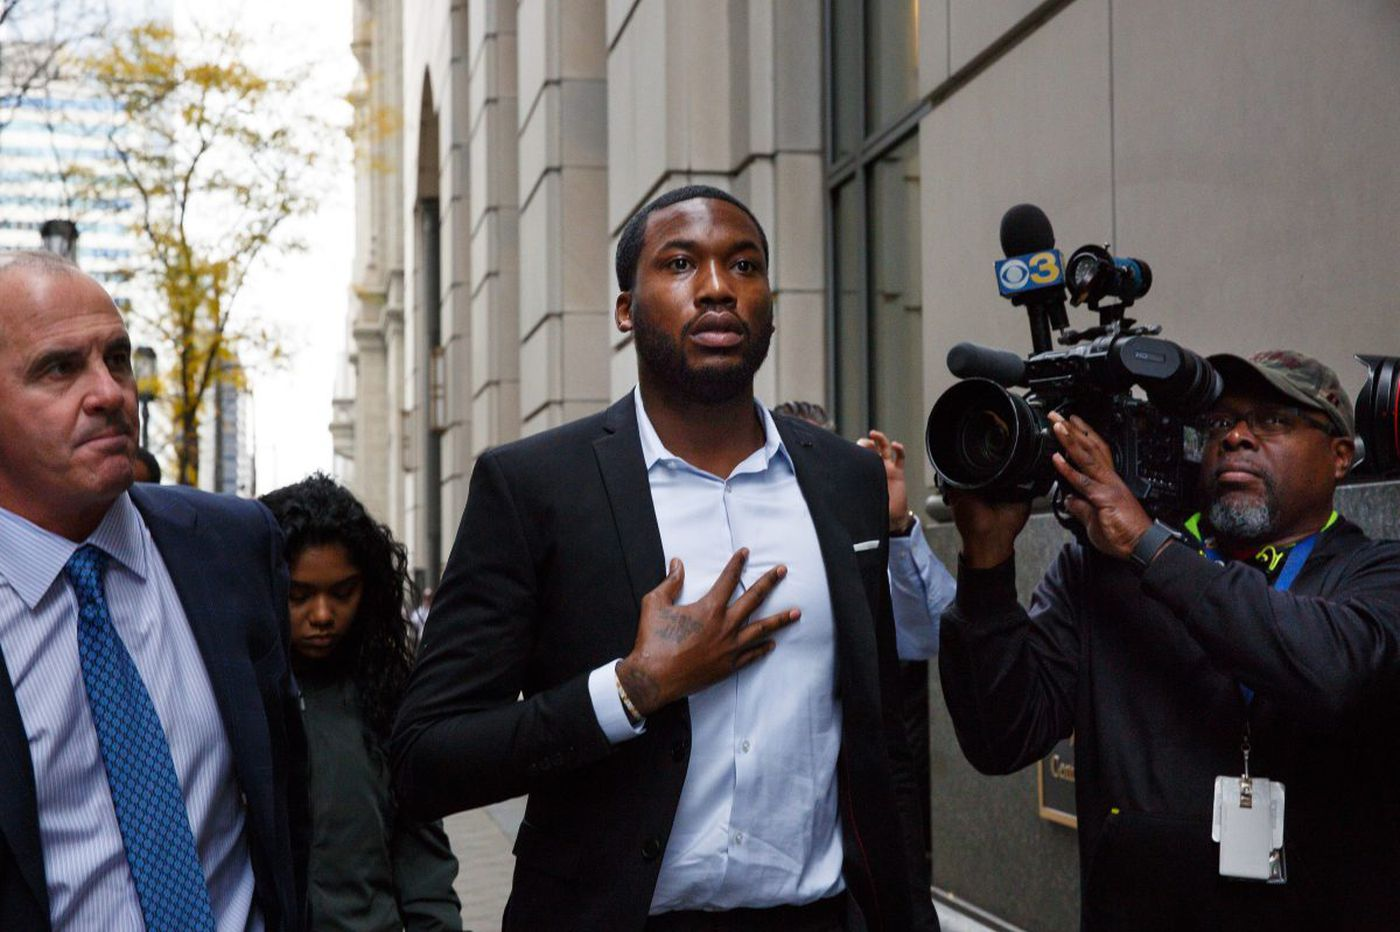 Meek Mill reacts to Eagles' Super Bowl bid from prison